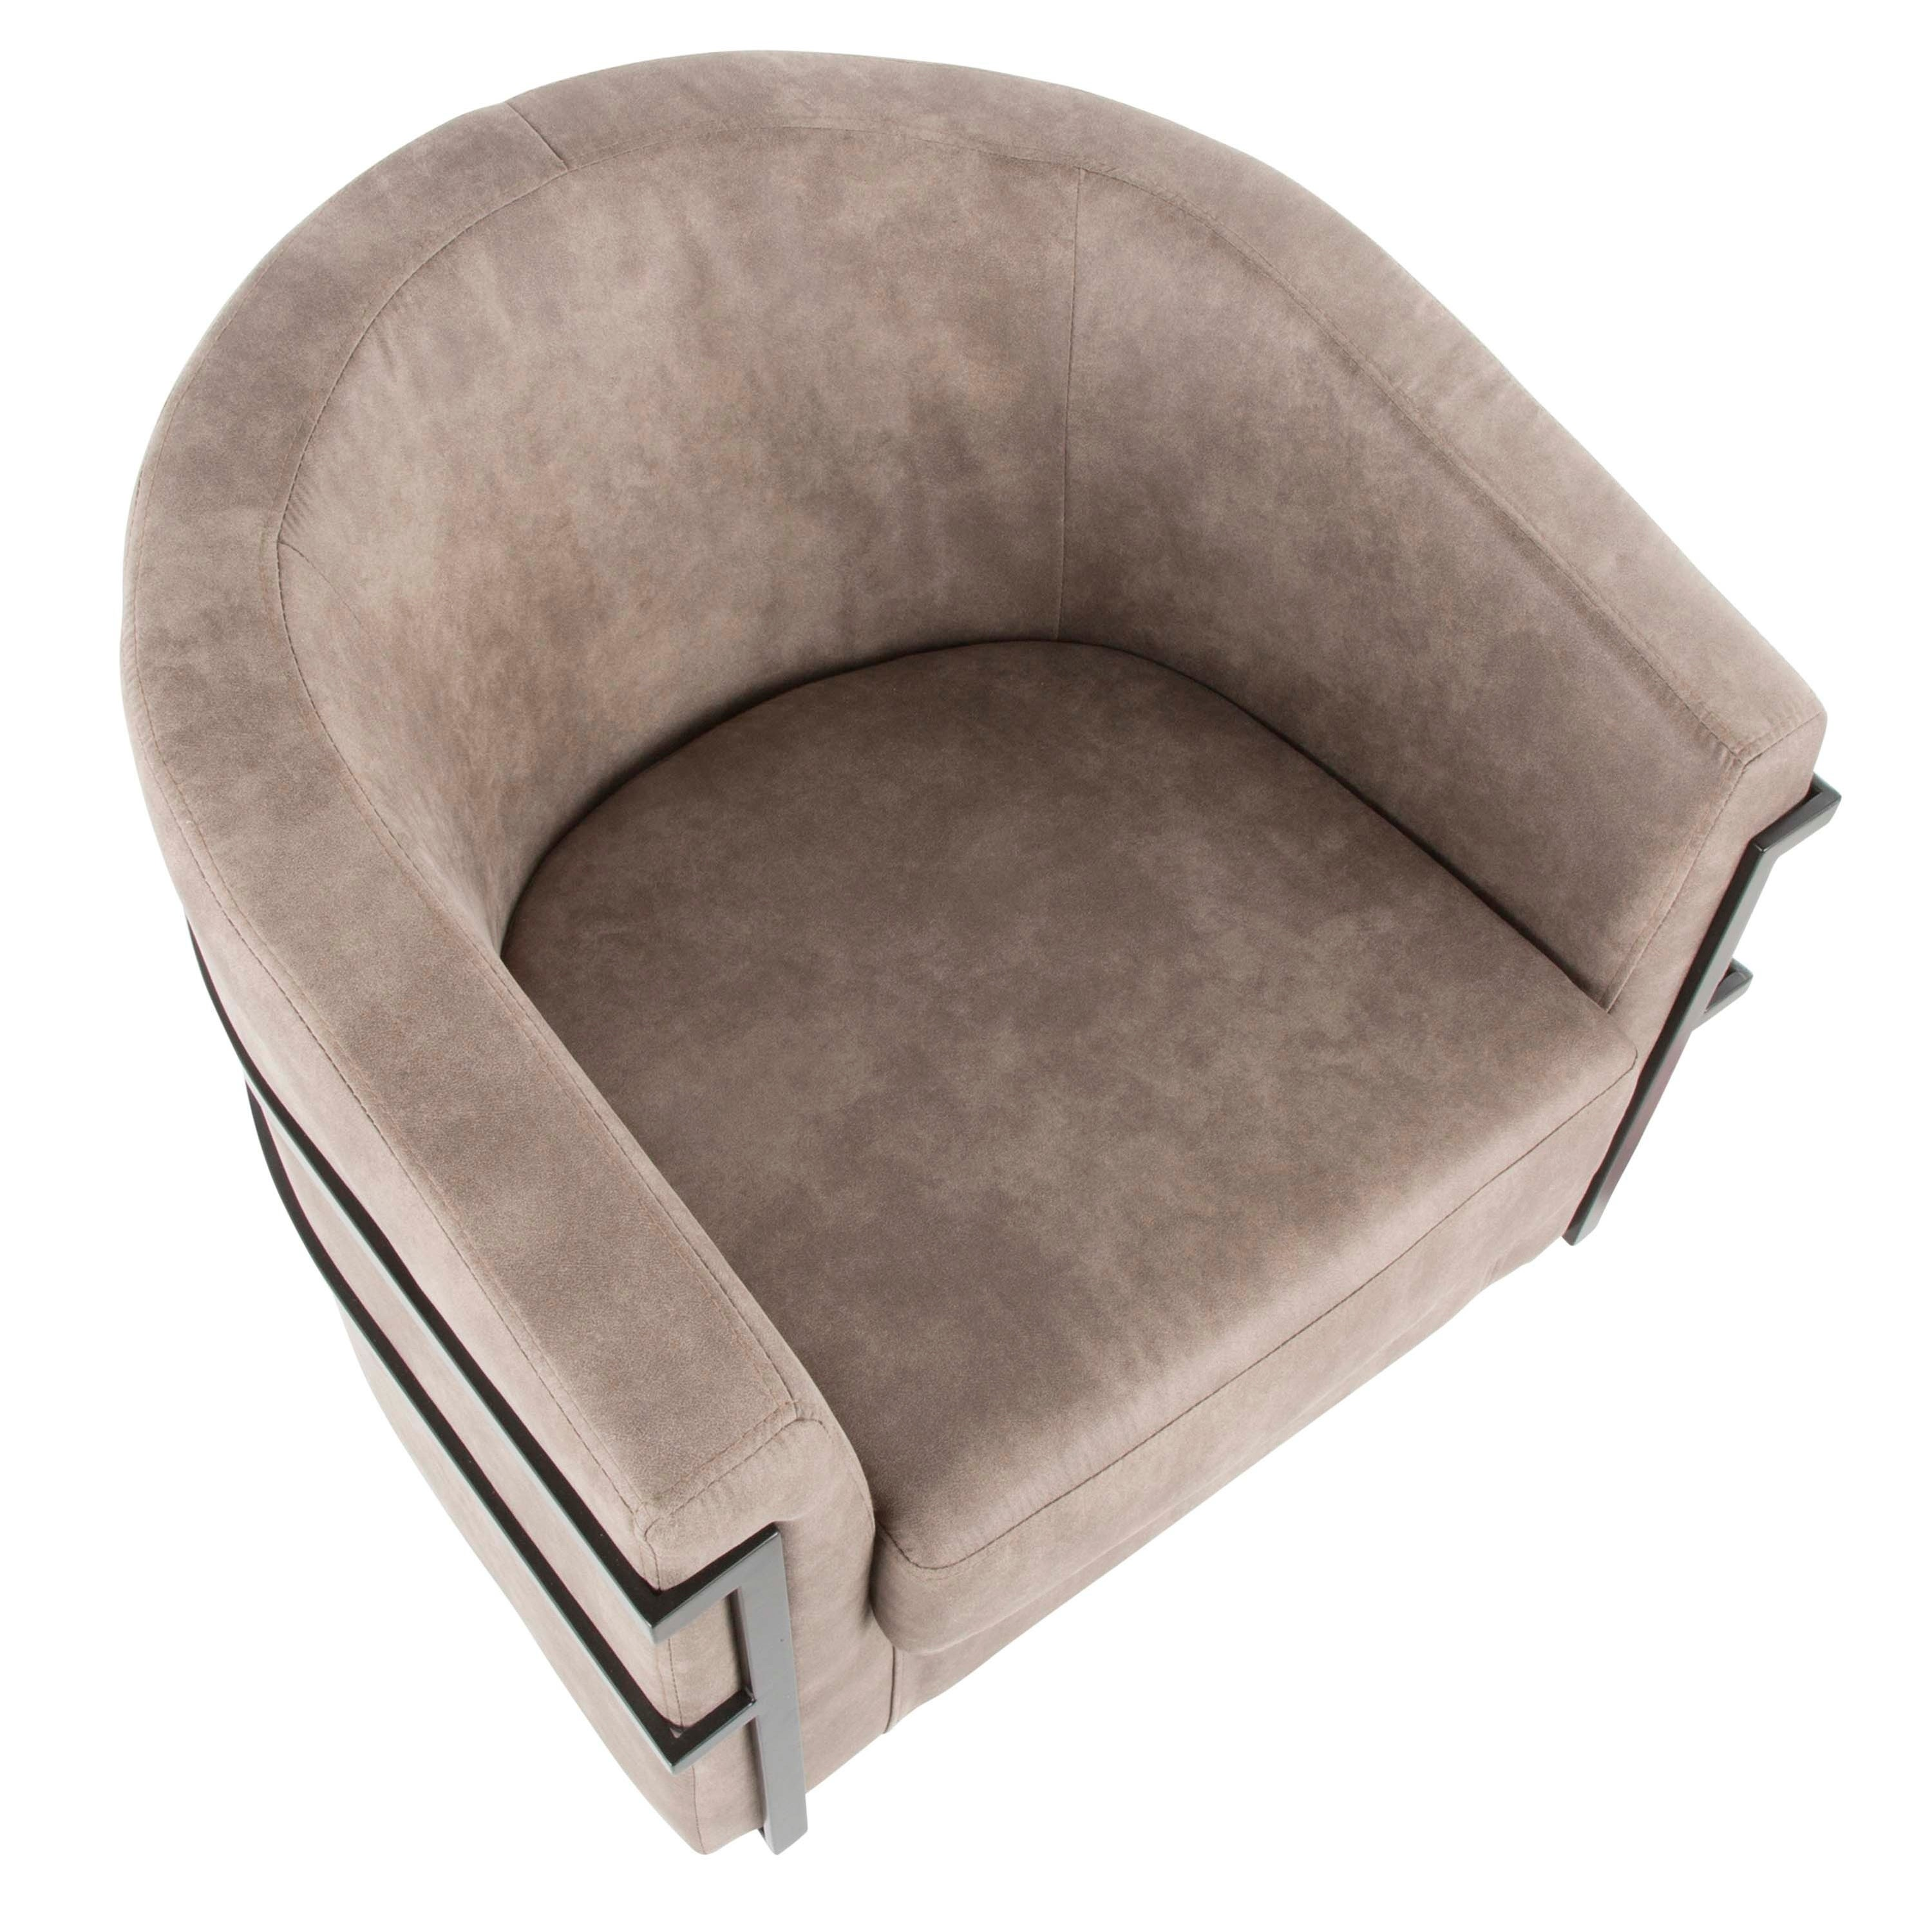 Shop Colby Industrial Upholstered Tub Chair with Metal Wrap-Around ...